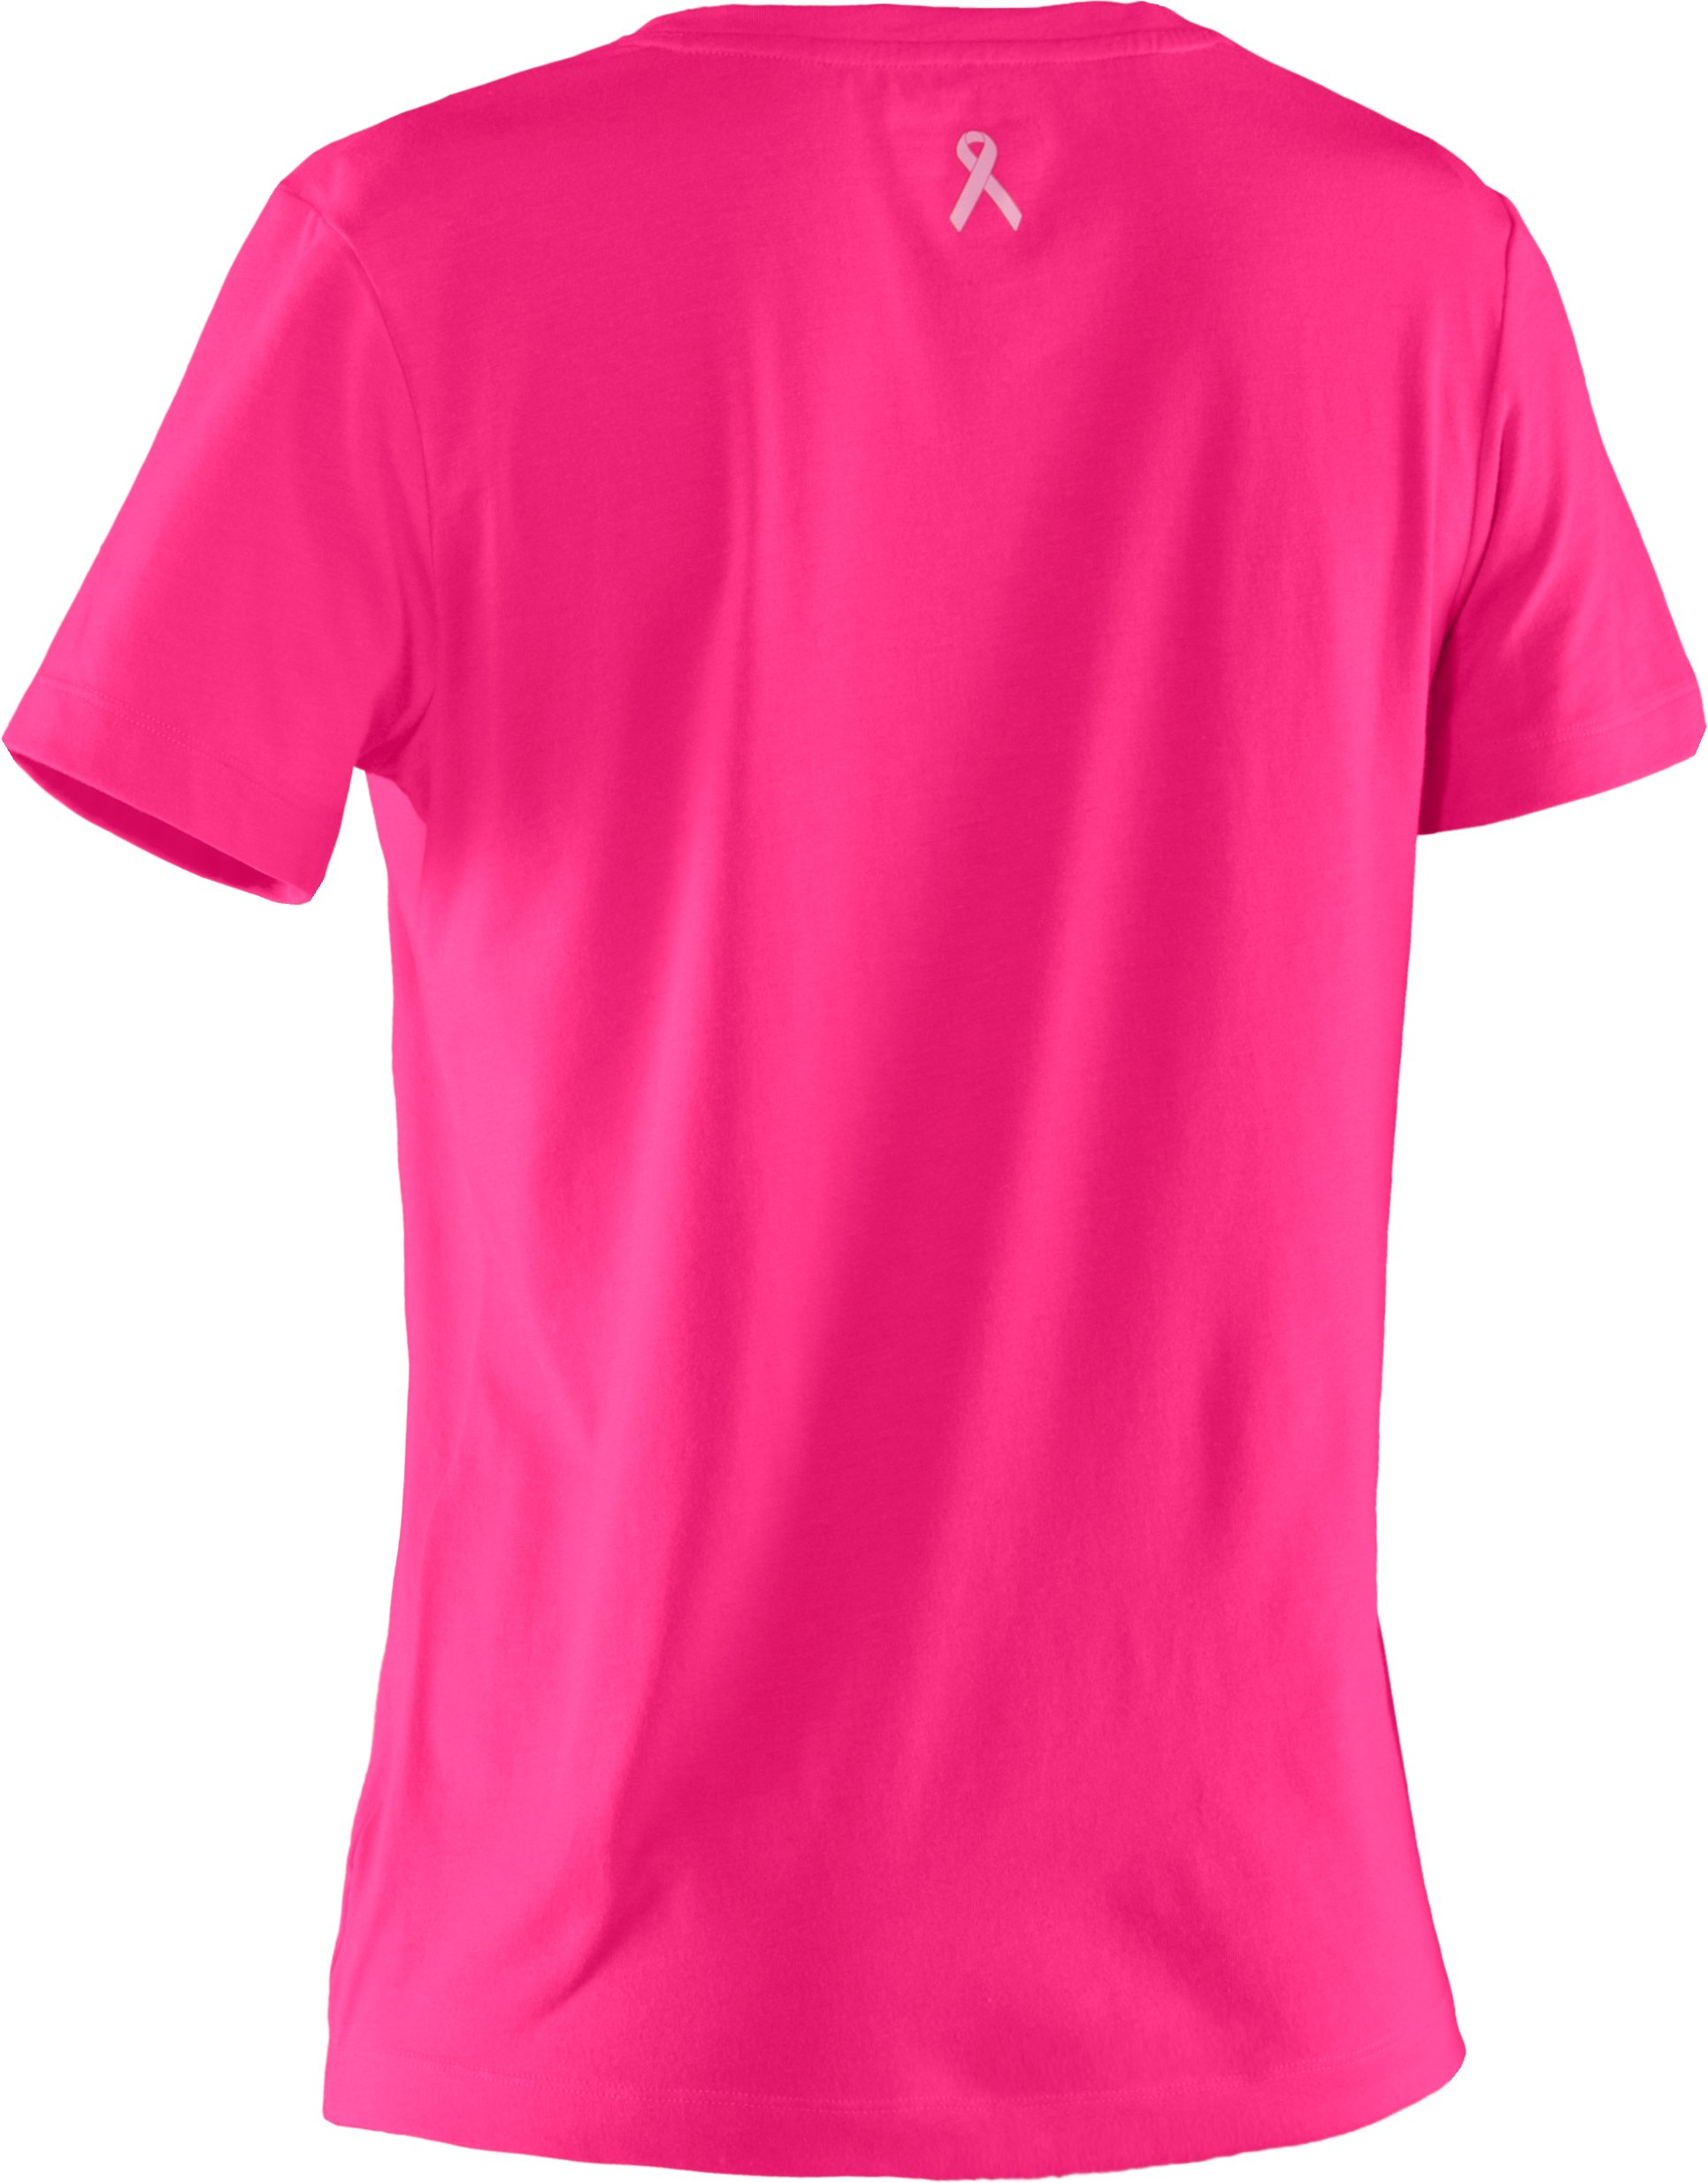 Women's PIP® UA Go Pink Or Go Home T-Shirt, Cerise